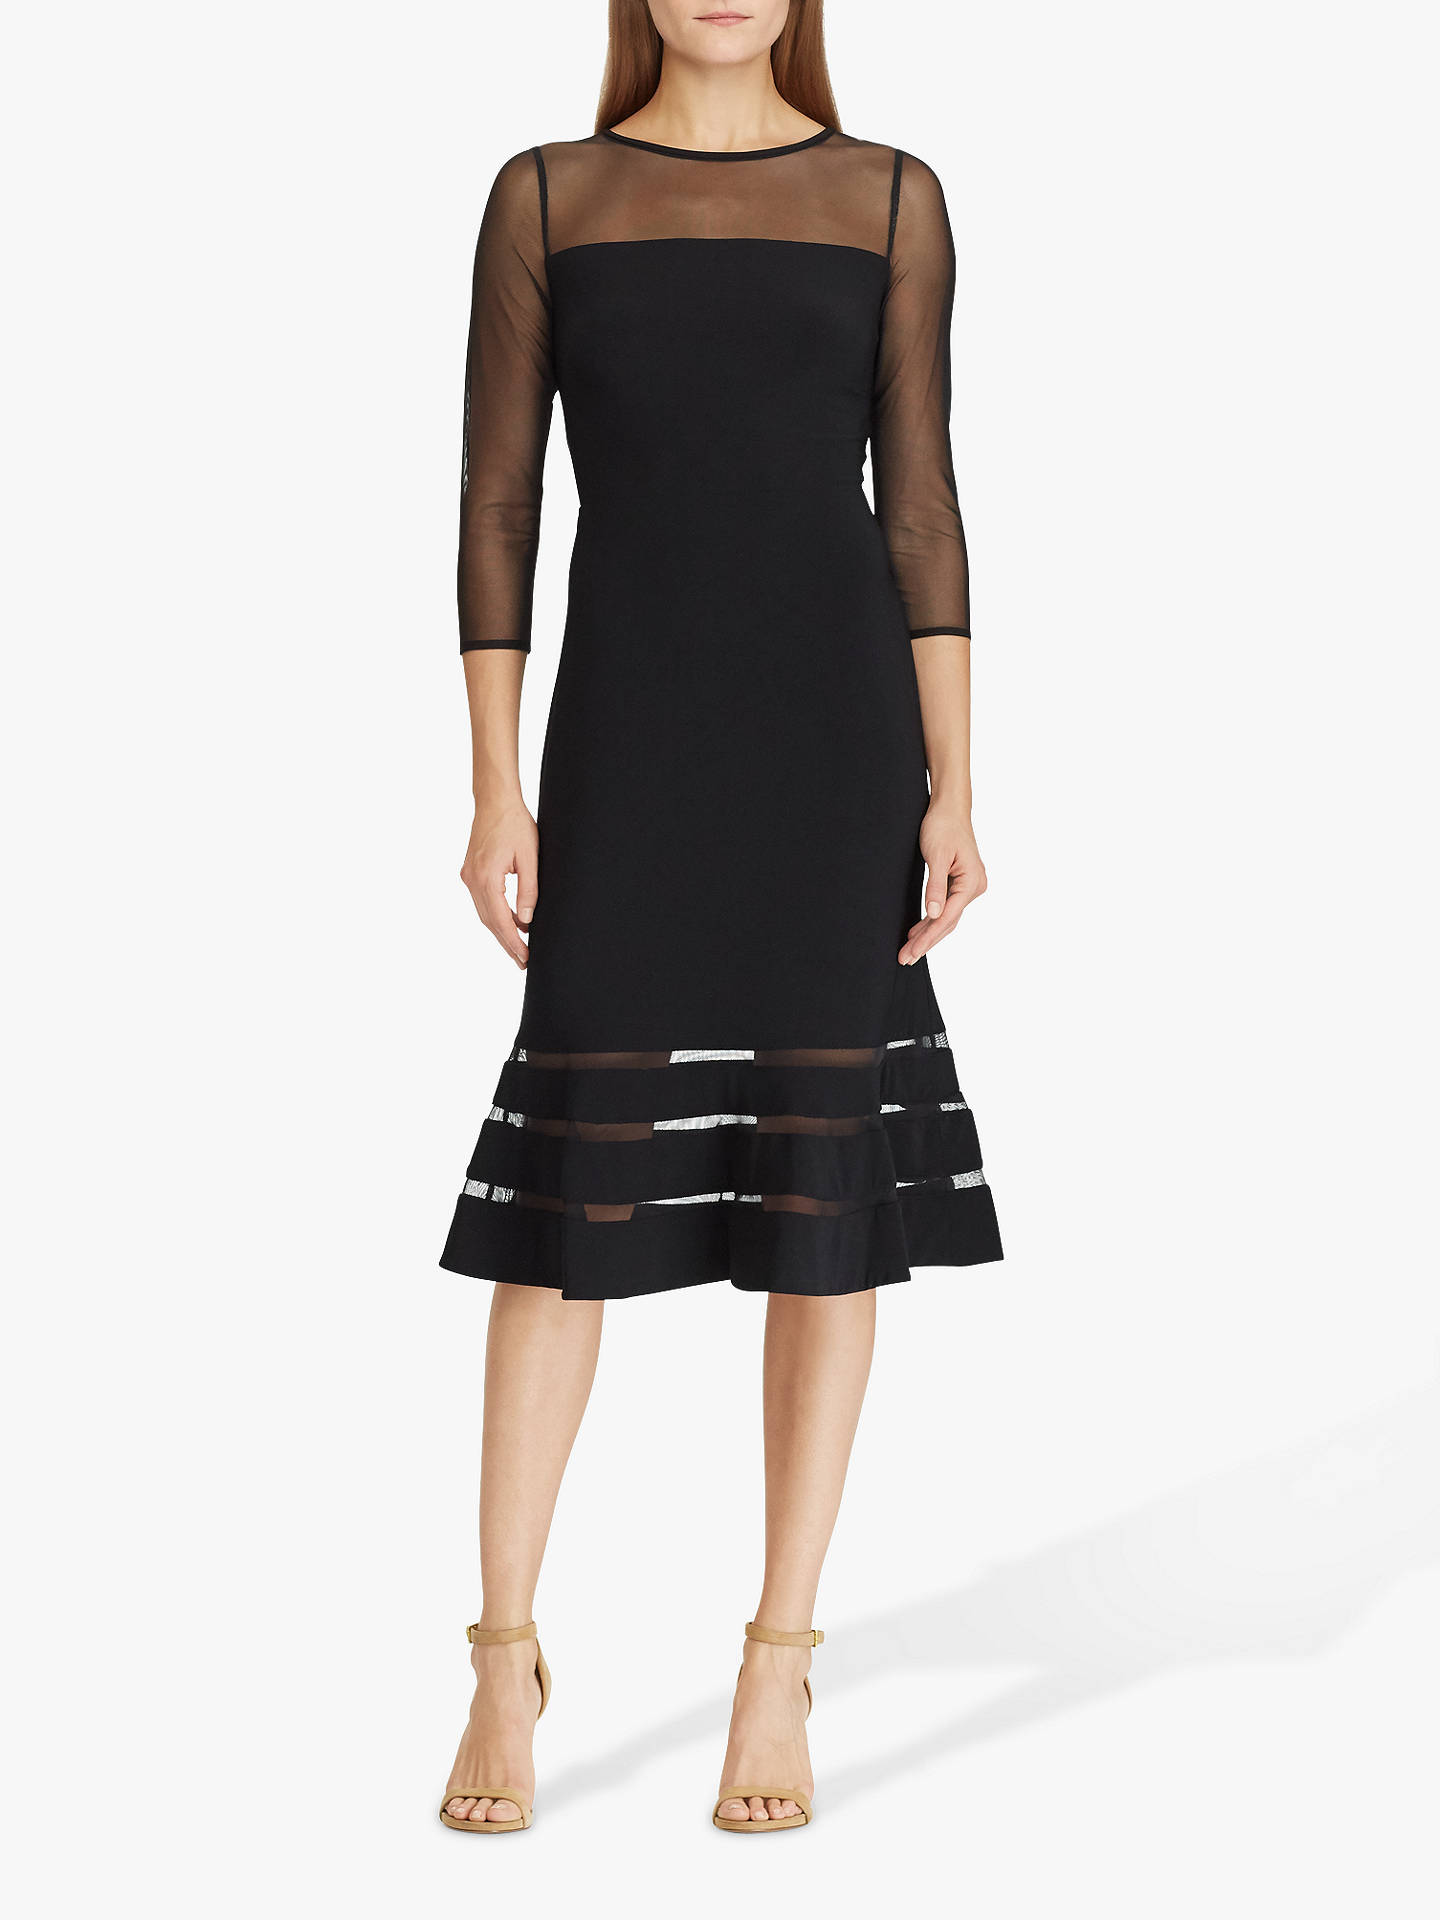 Ralph Lauren Cocktail Dresses and Formal